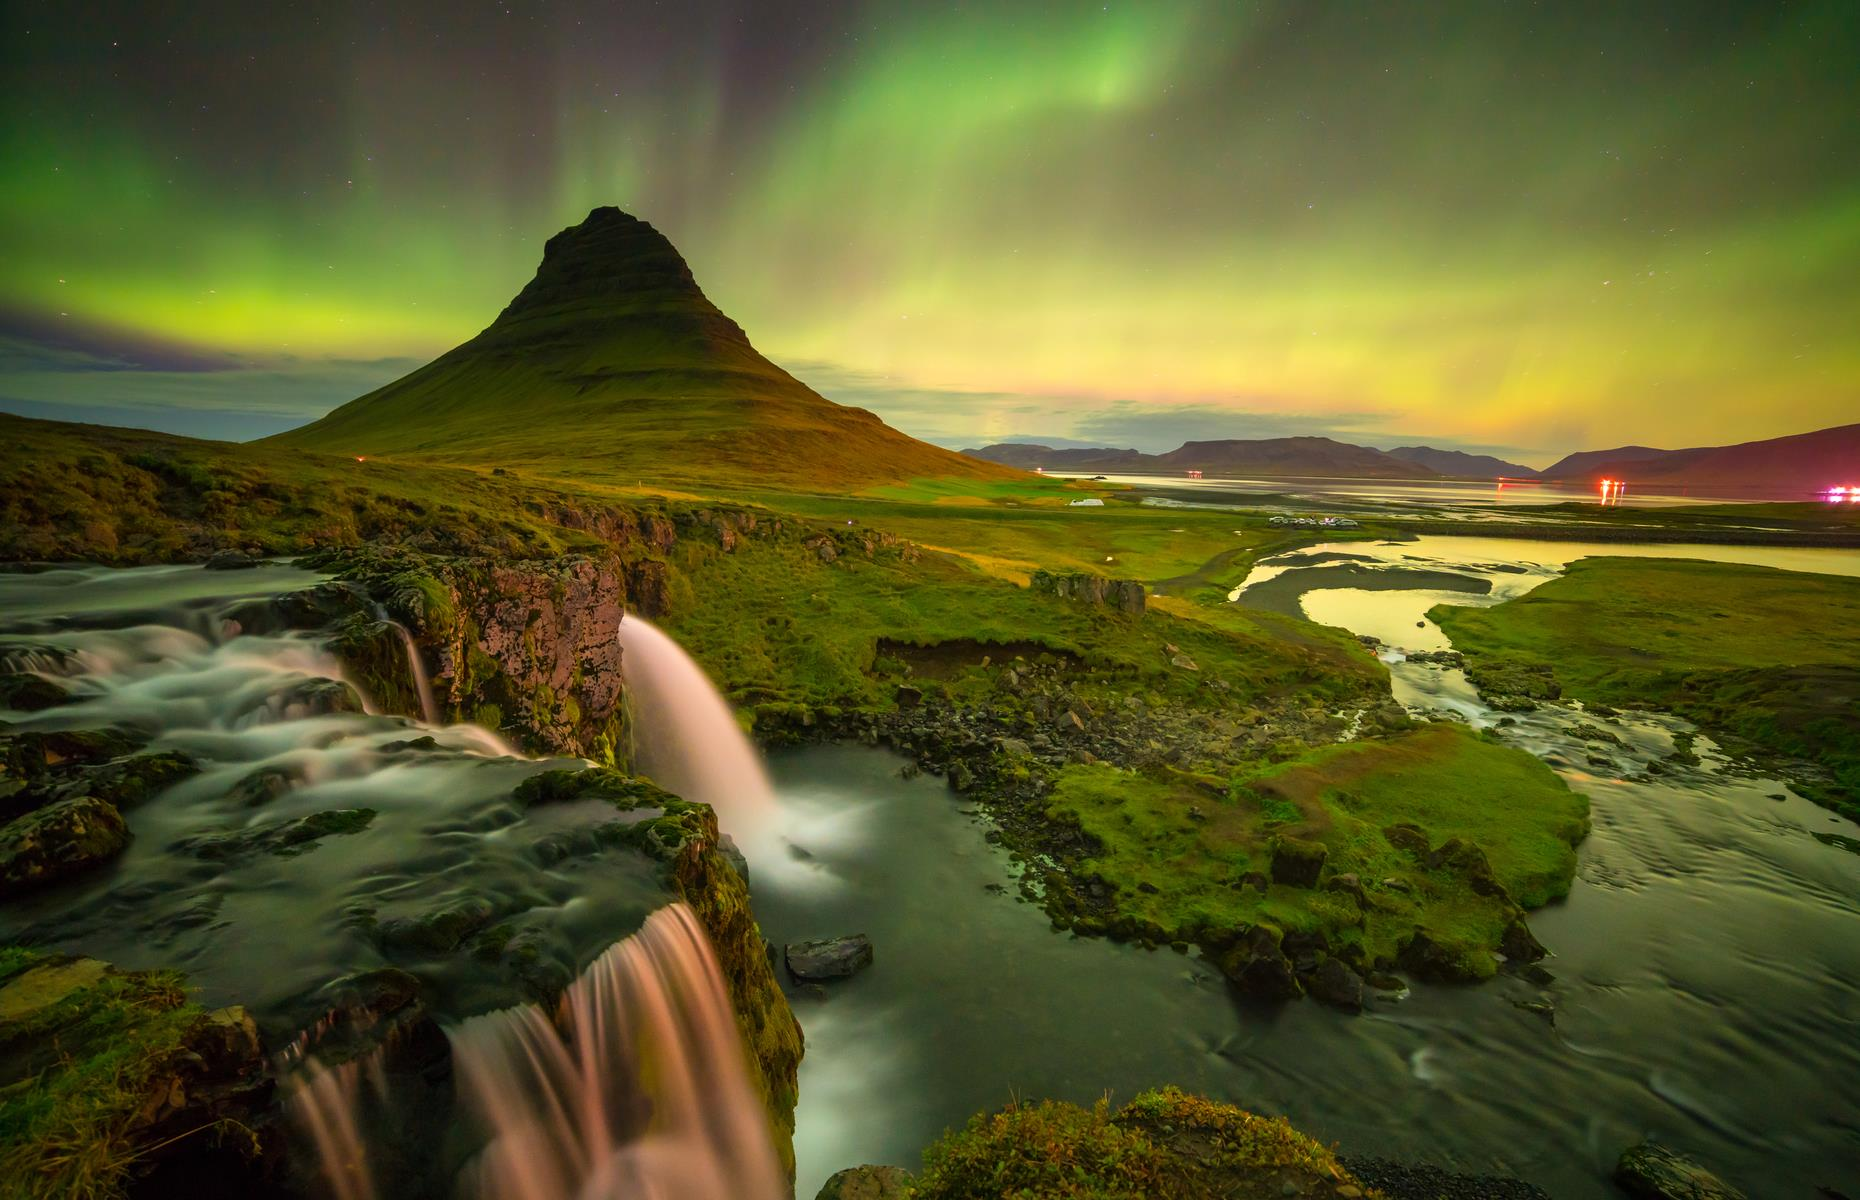 Slide 4 of 25: Located in the Snæfellsnes Peninsula near the town of Grundarfjörður, the pointed peak of Kirkjufell mountain is one of Iceland's most iconic inhabitants, measuring 1,519 feet high (463m). Within walking distance is another picture-perfect sight: Kirkjufellsfoss, which means 'Church Mountain Waterfalls'. The area's natural beauty is only enhanced by the aurora borealis (another name for the Northern Lights), sometimes referred to as the 'merry dancers'.